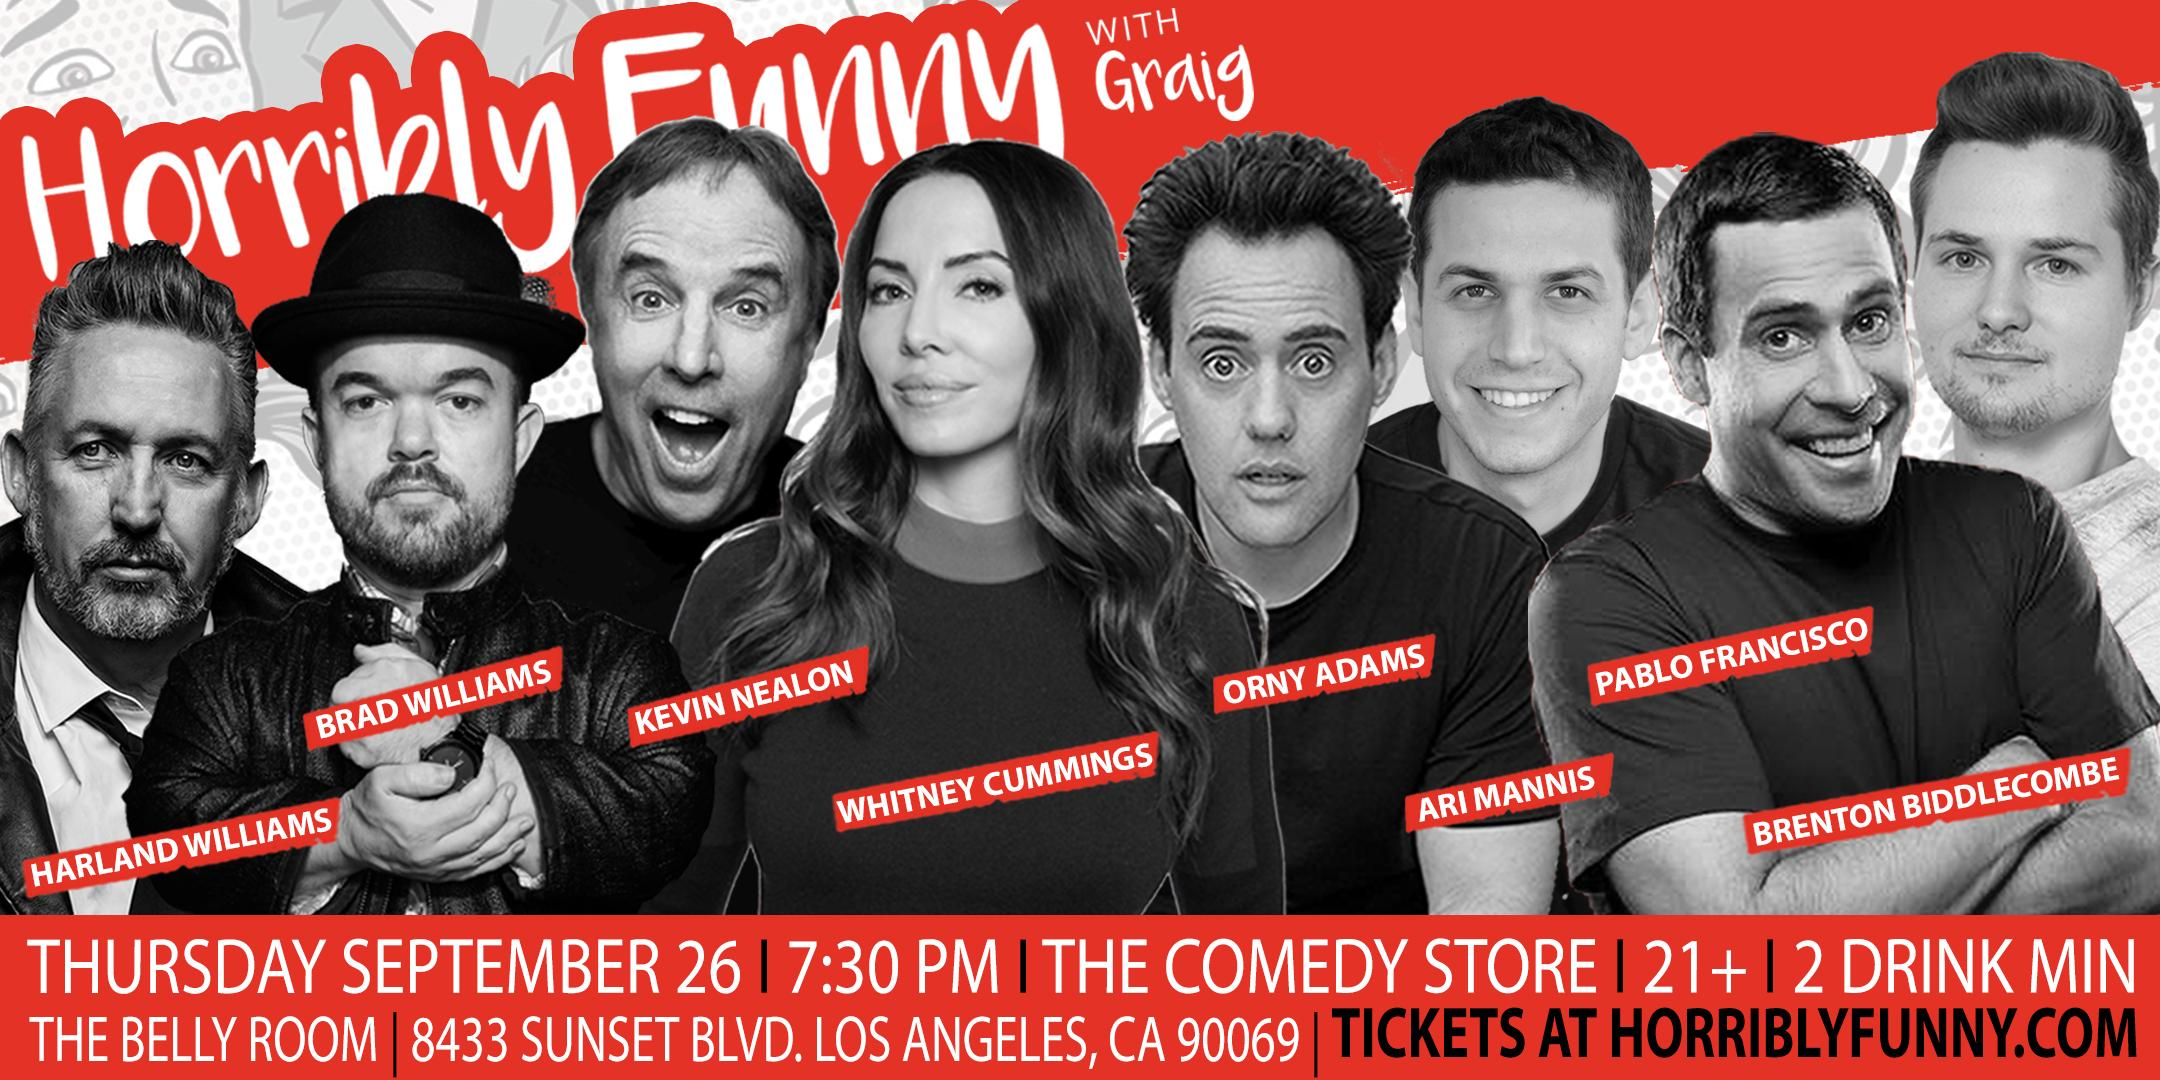 Horribly Funny- Kevin Nealon, Whitney Cummings, Harland Williams & More!